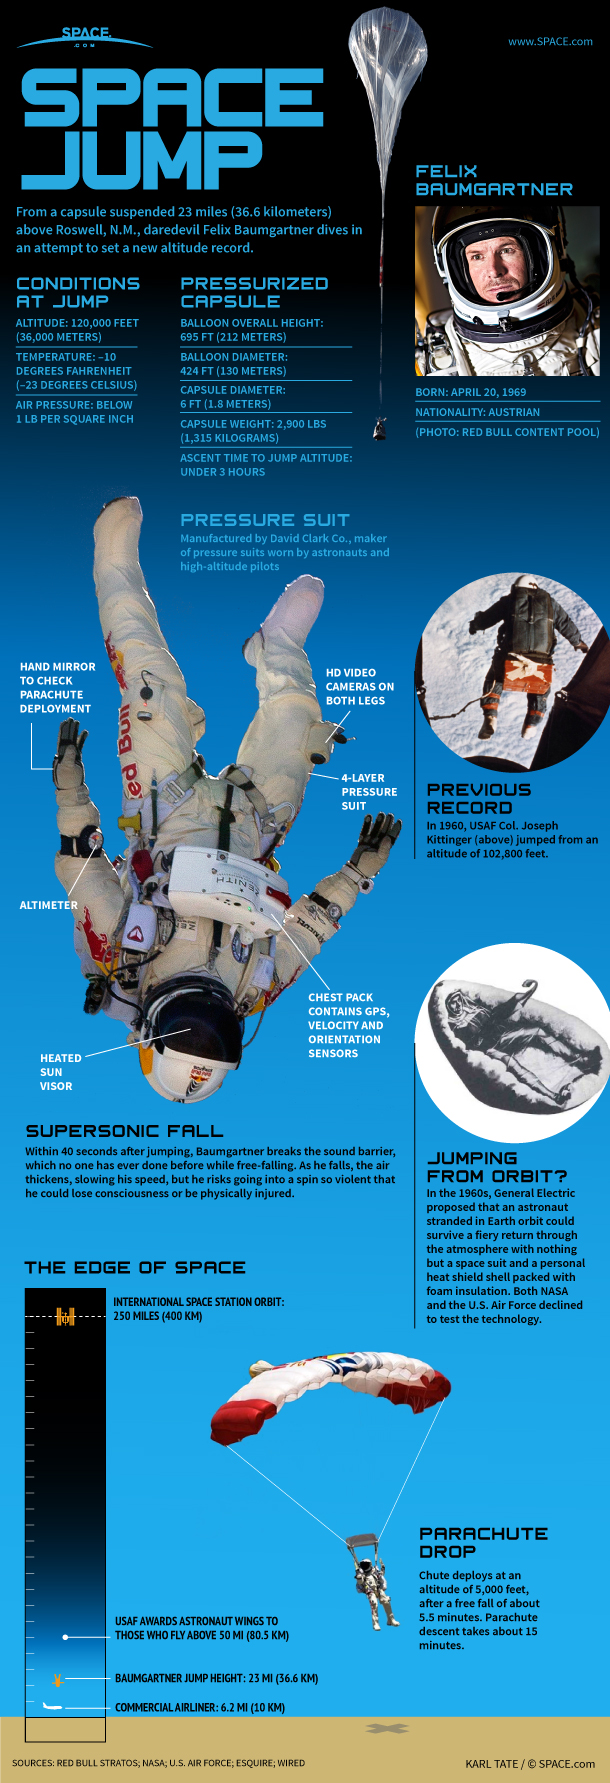 Space Jump: How Daredevil's Record-Breaking Supersonic Skydive Works (Infographic)